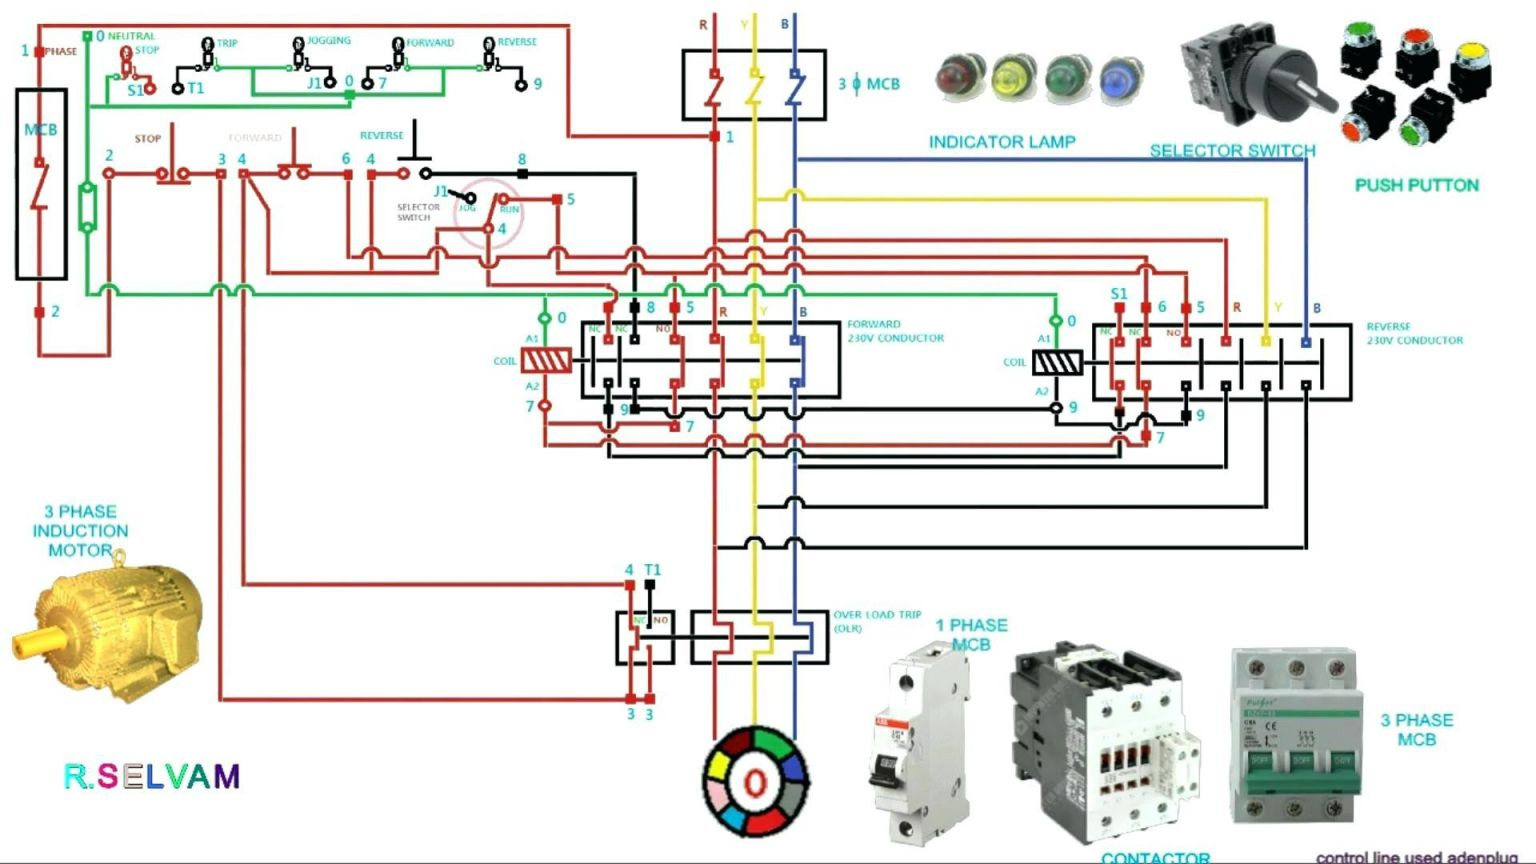 Luxury 3 Phase Contactor Wiring Diagram Start Stop - Wiring Diagram - 3 Phase Contactor Wiring Diagram Start Stop